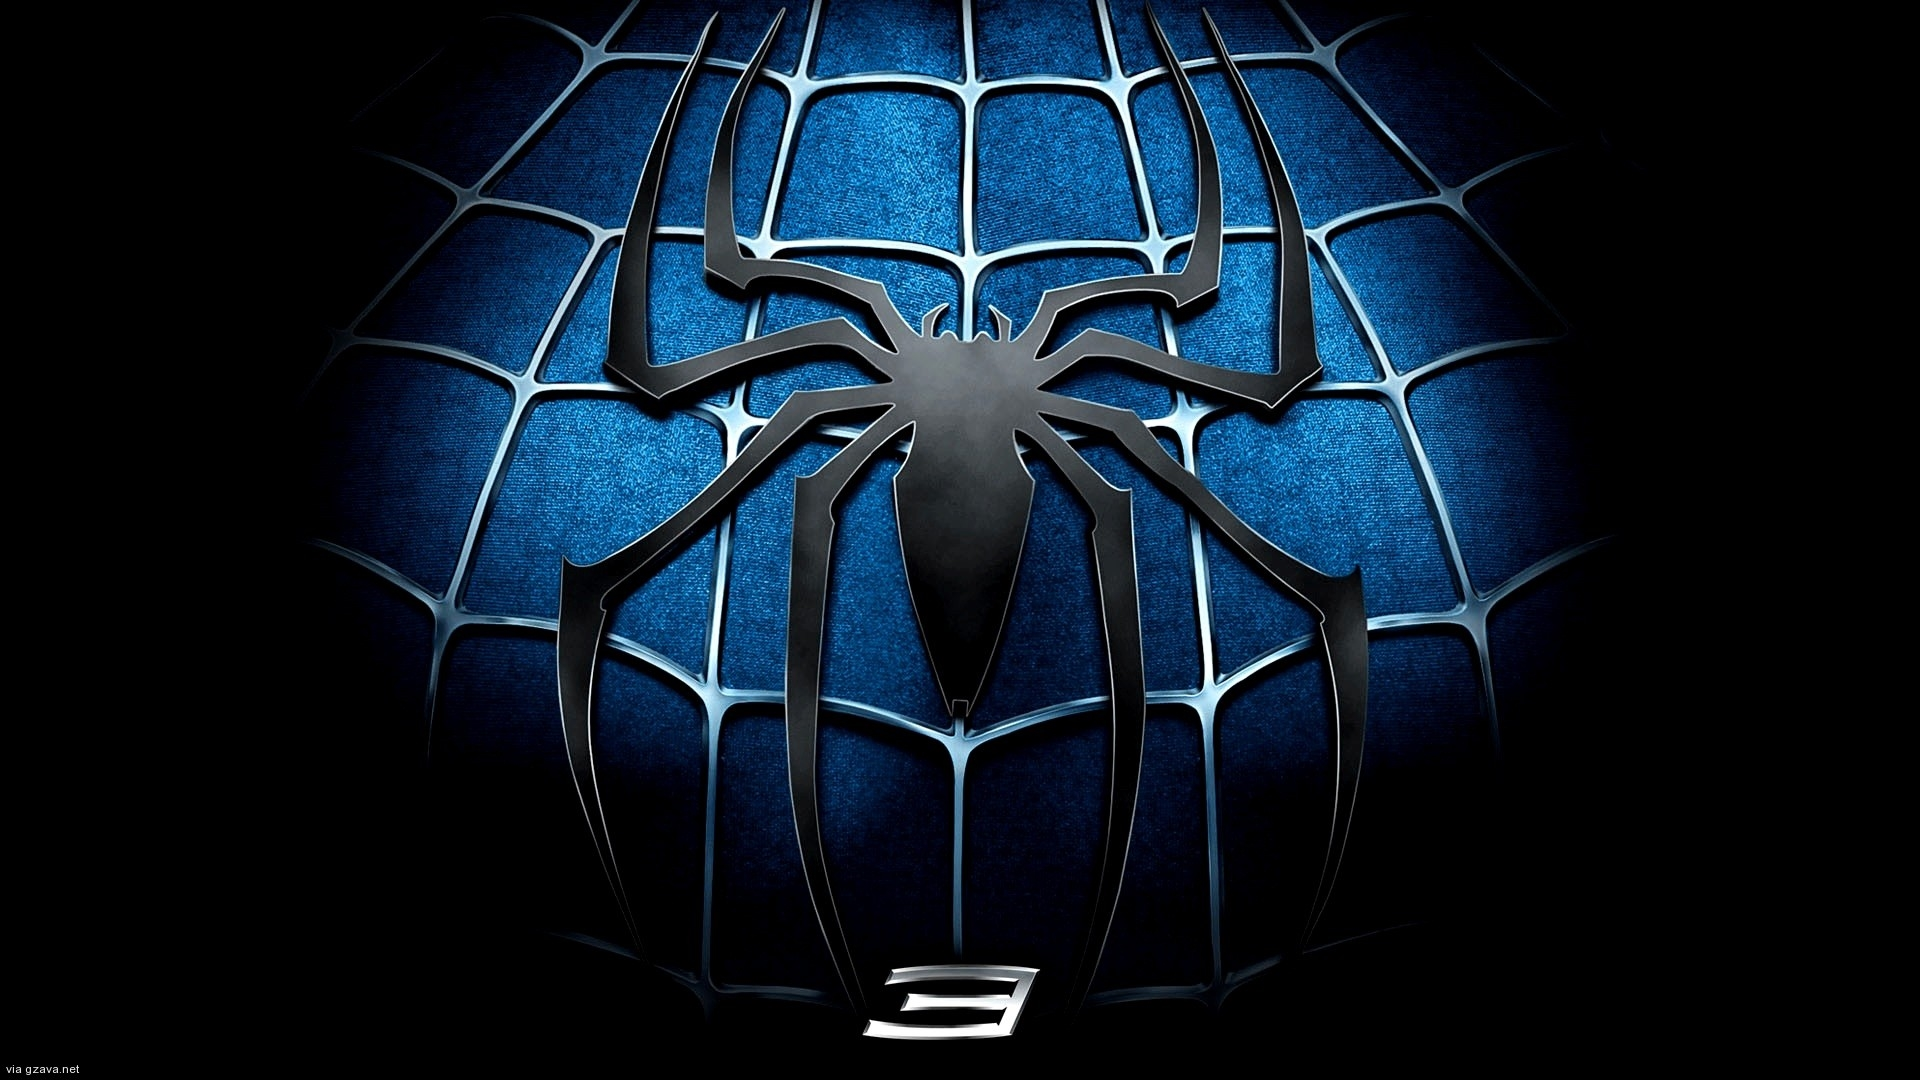 spiderman-download-logo-wallpaper-wpc5808929